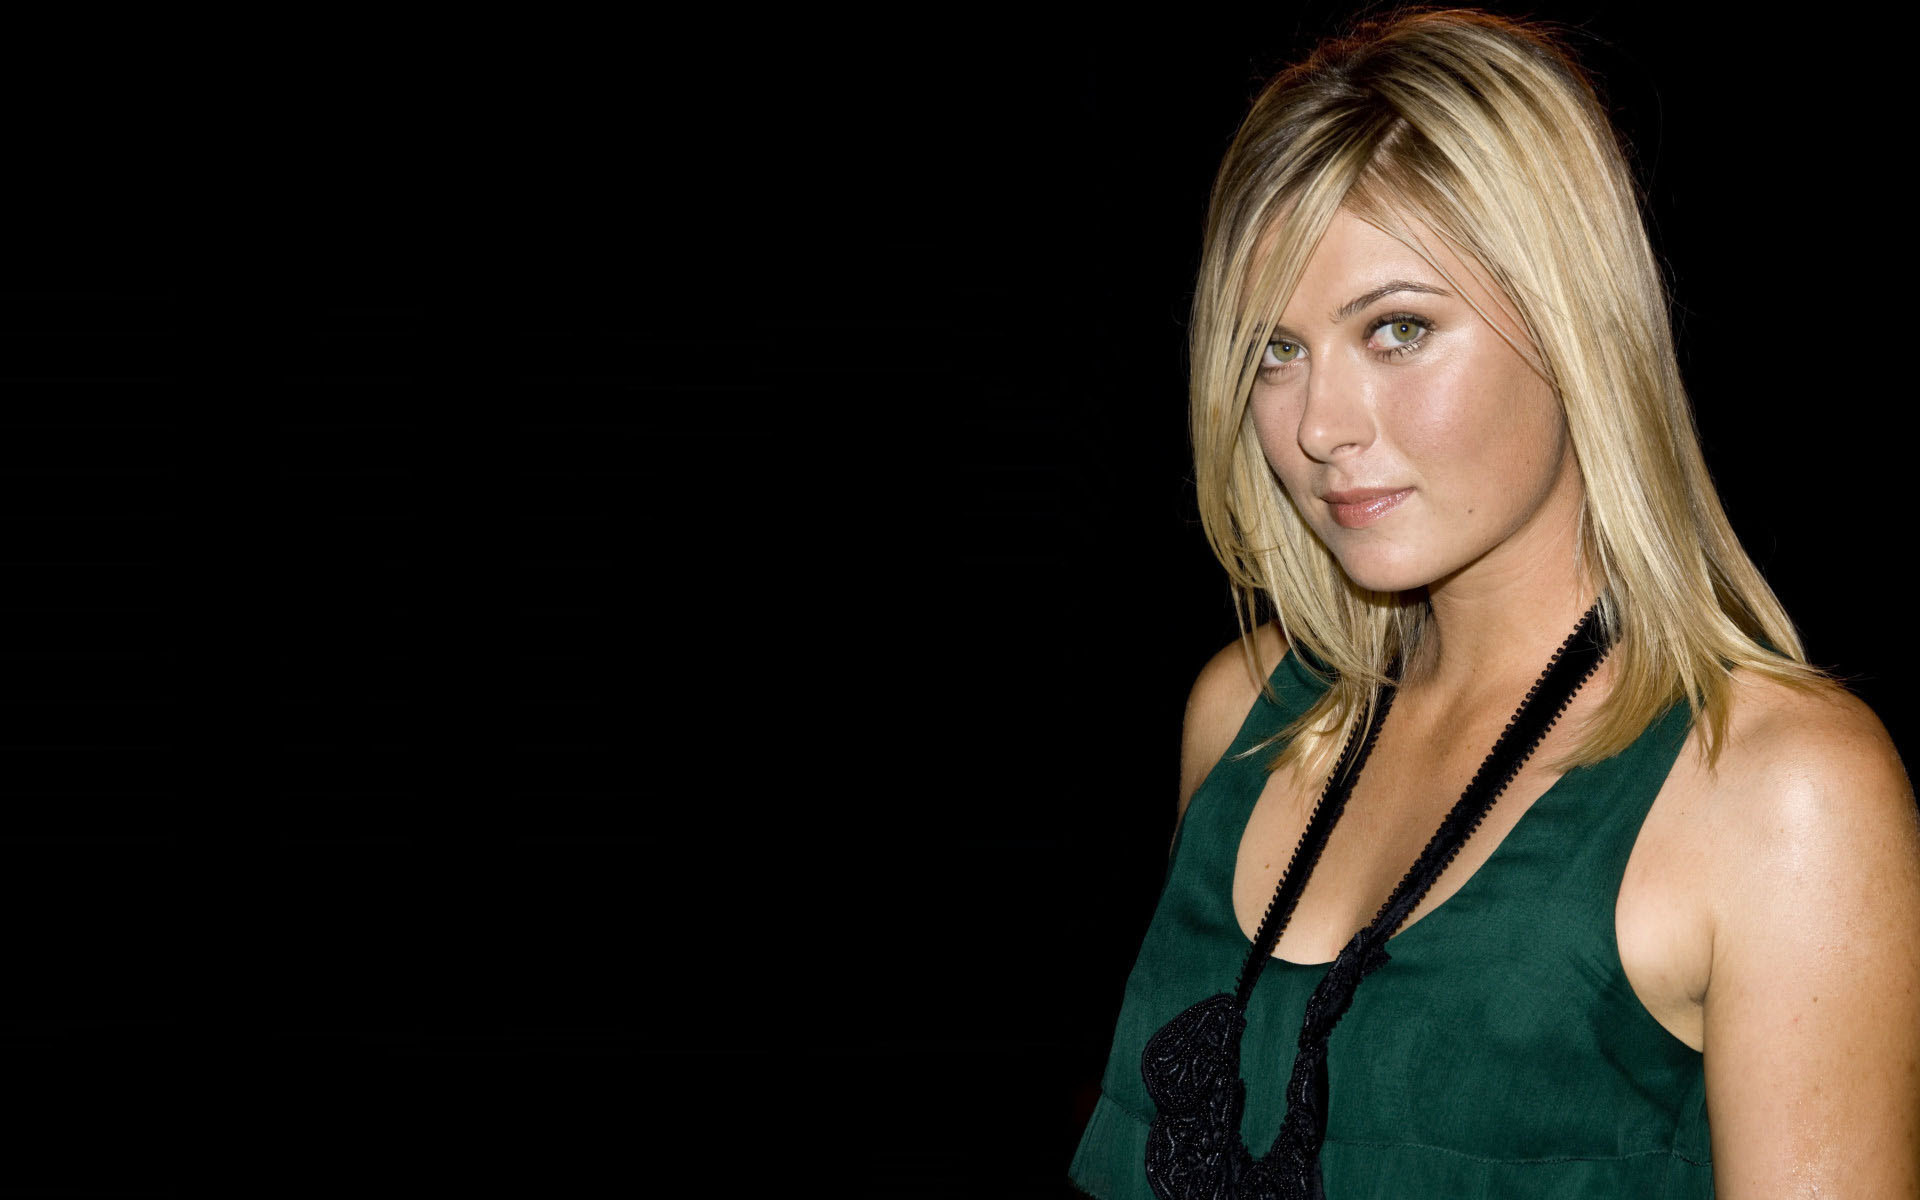 VK53 Maria Sharapova Wallpapers 1920x1200   4USkY 1920x1200